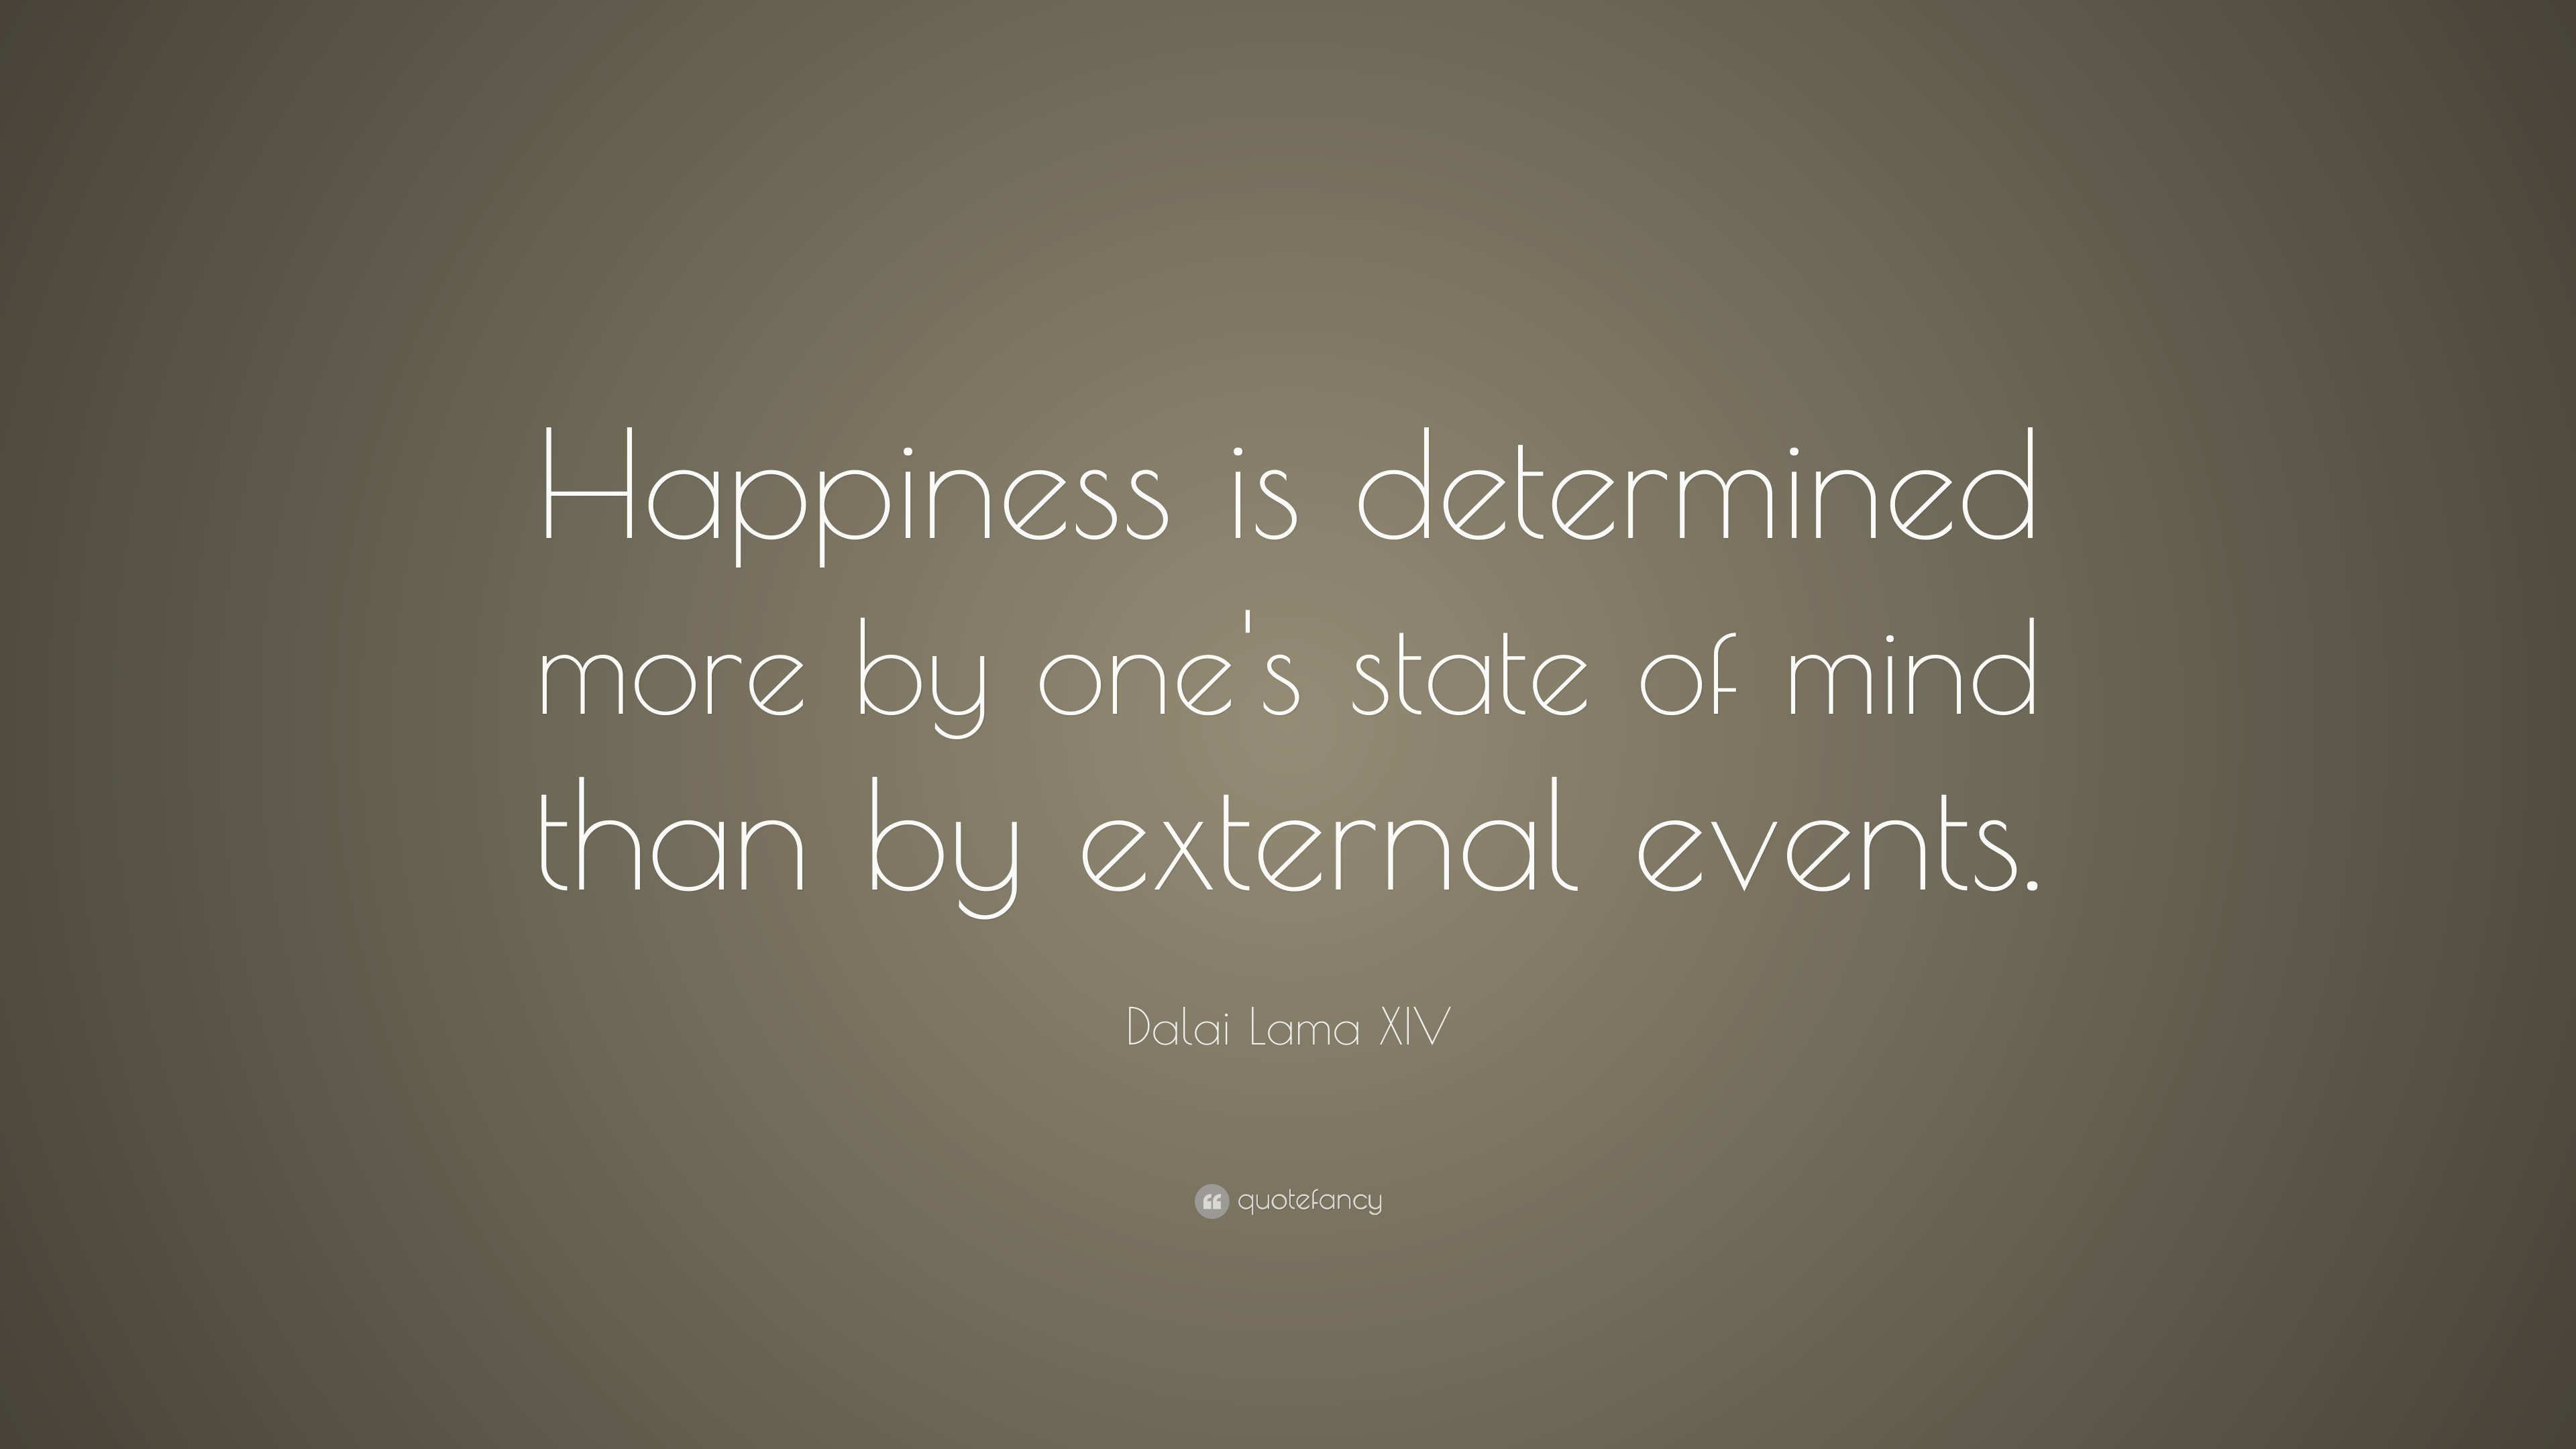 dalai lama xiv quote happiness is determined more by one